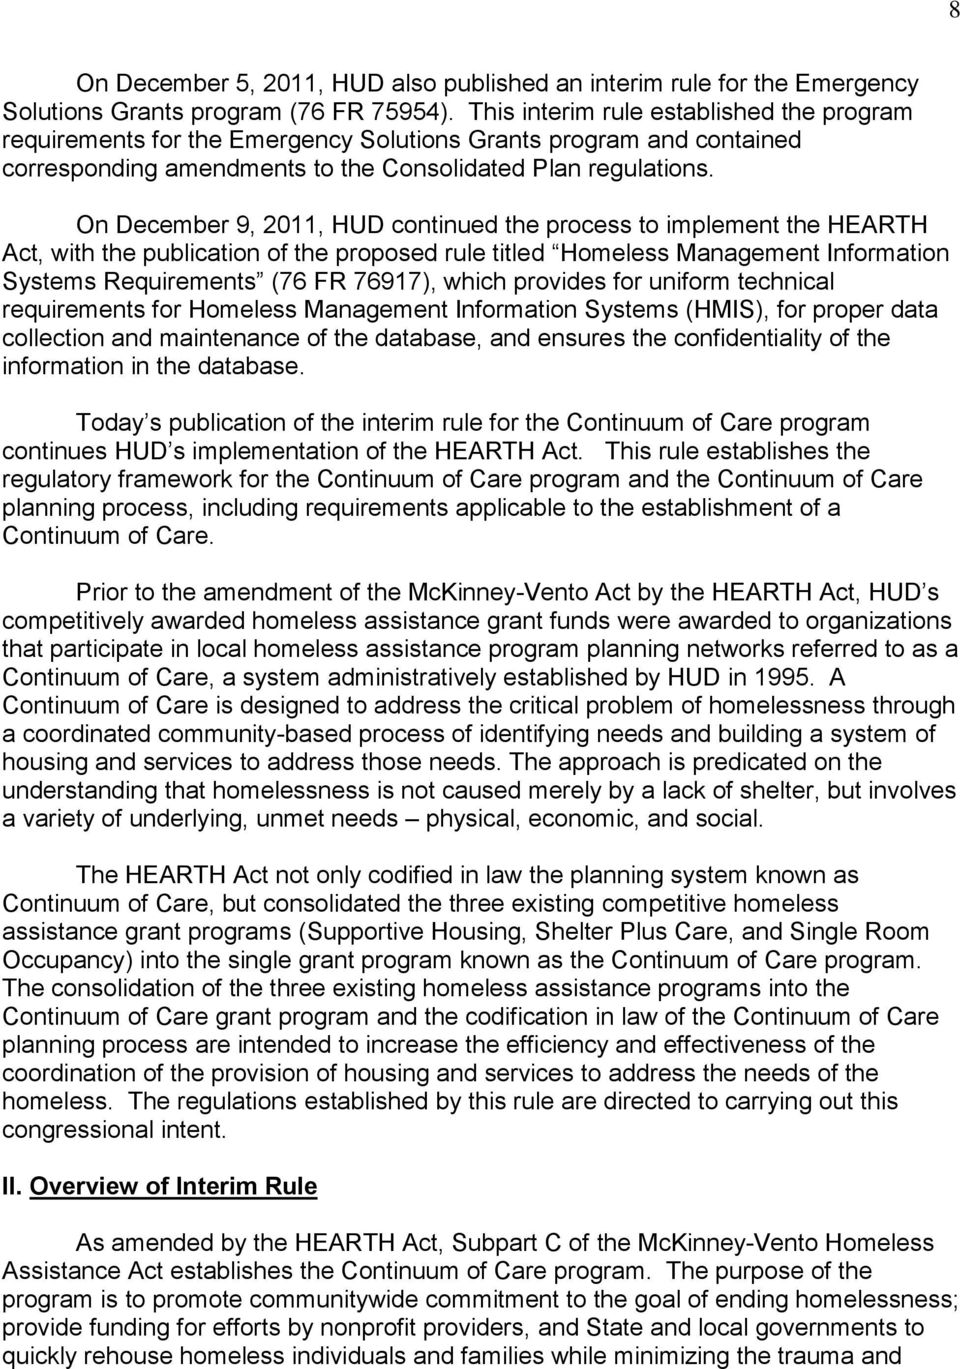 On December 9, 2011, HUD continued the process to implement the HEARTH Act, with the publication of the proposed rule titled Homeless Management Information Systems Requirements (76 FR 76917), which